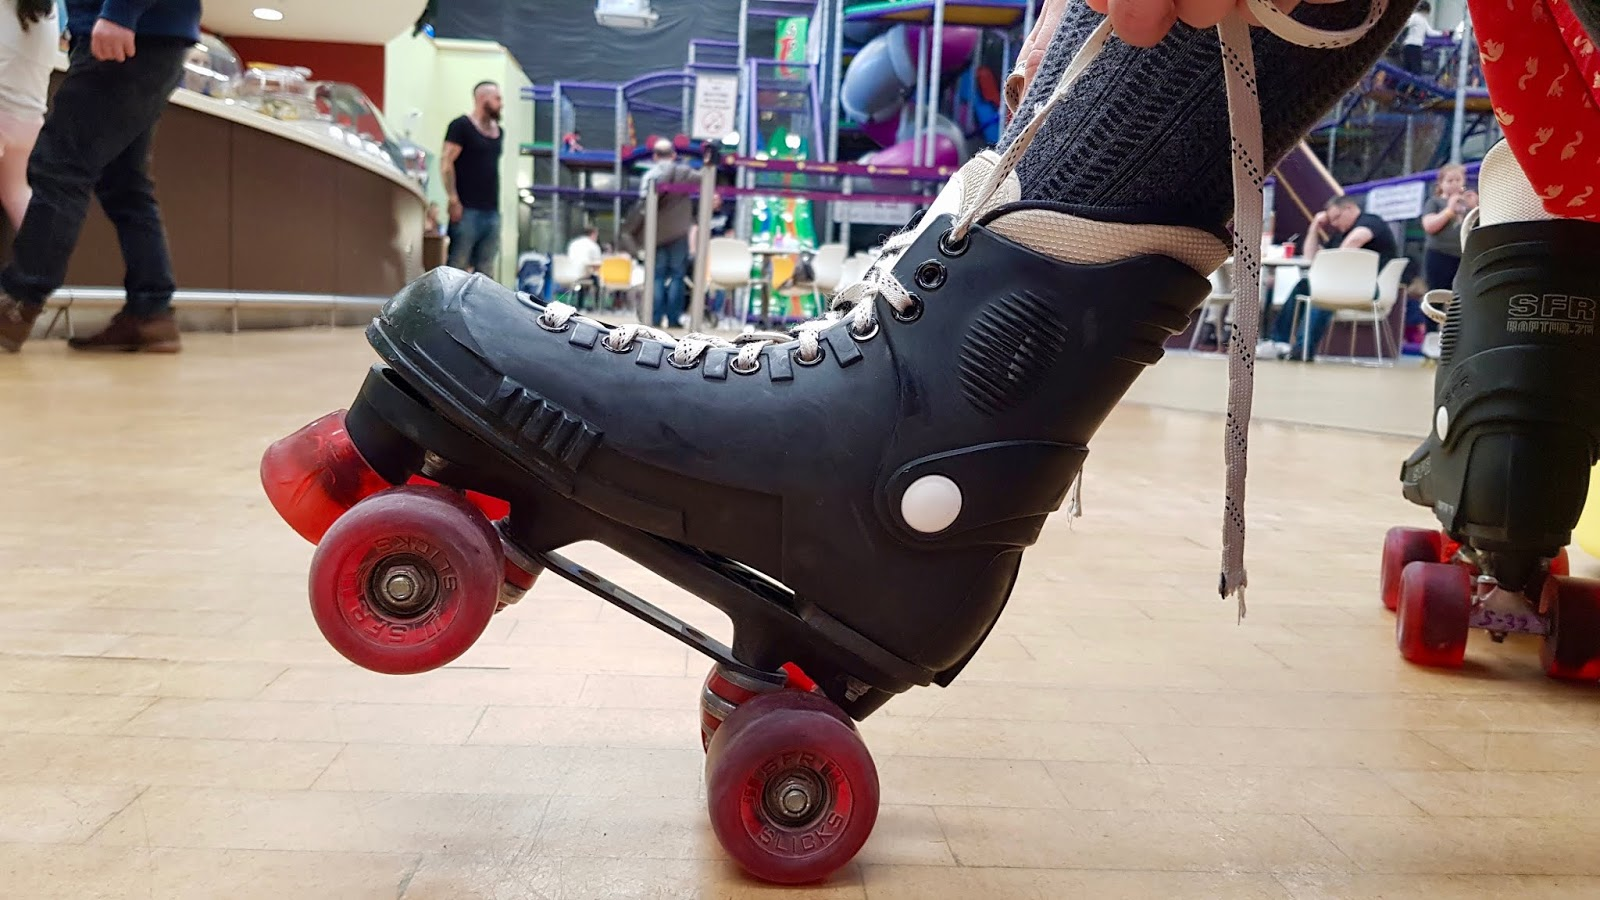 A close-up of Abbey's roller skate at CurveMotion, showing her tying the laces